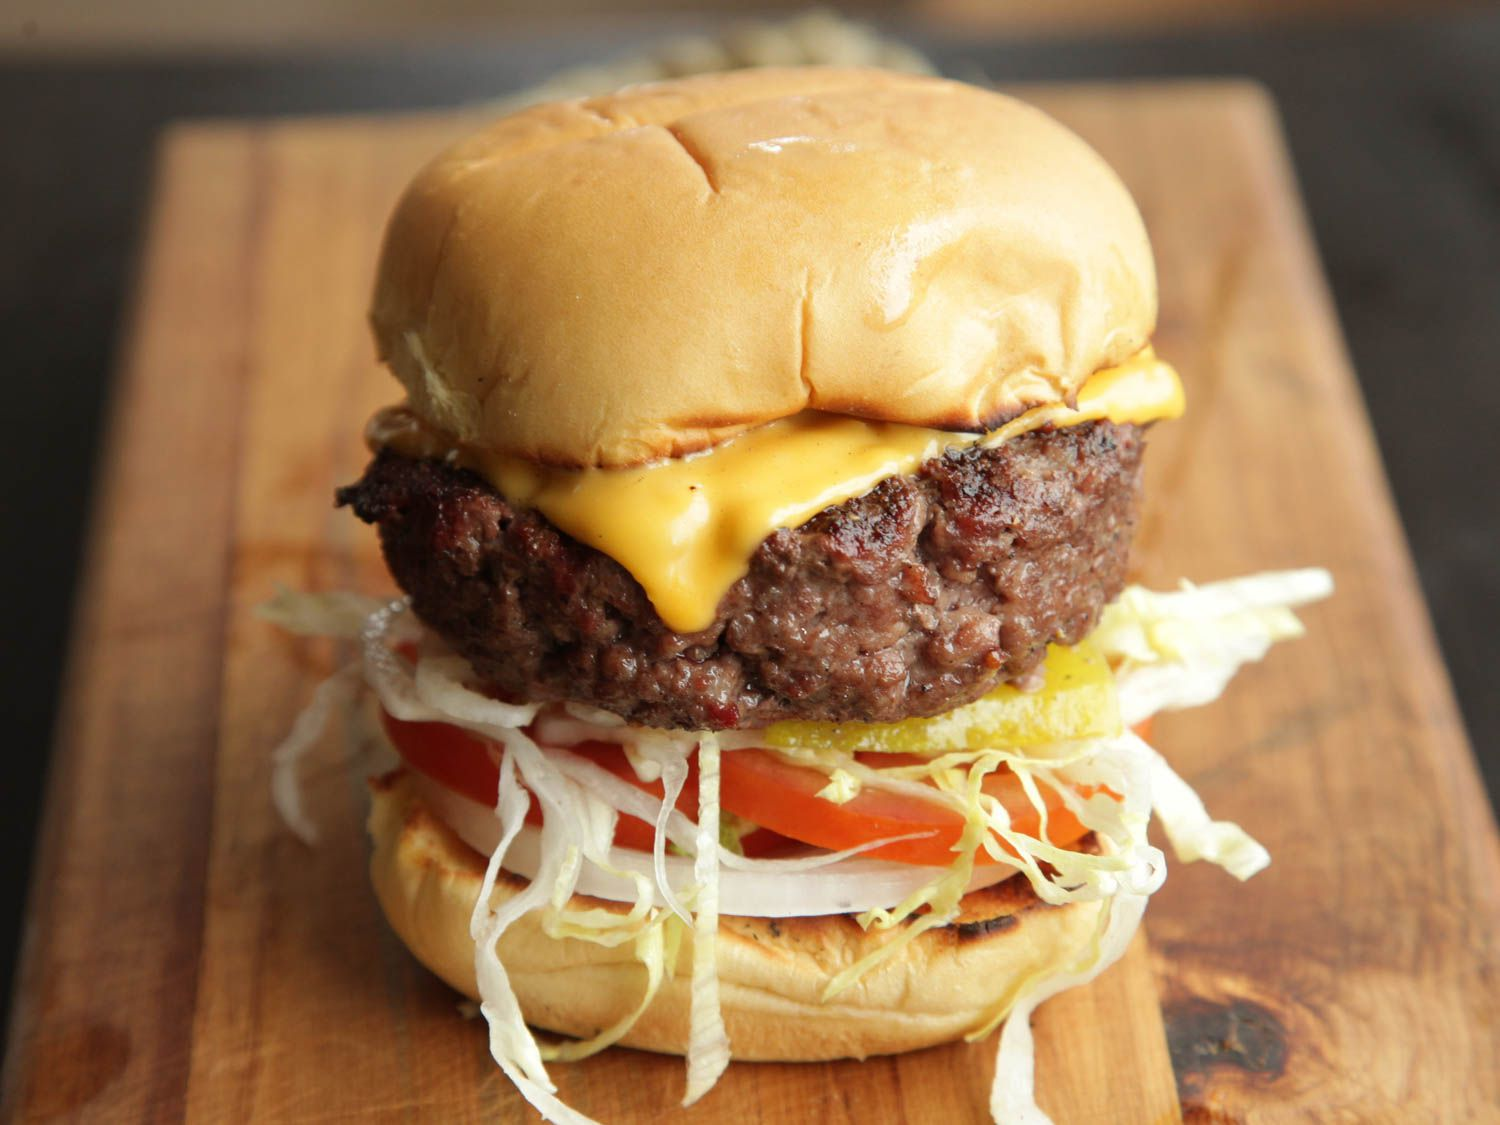 A thick grilled cheeseburger on a bun with shredded lettuce, onion, and tomato